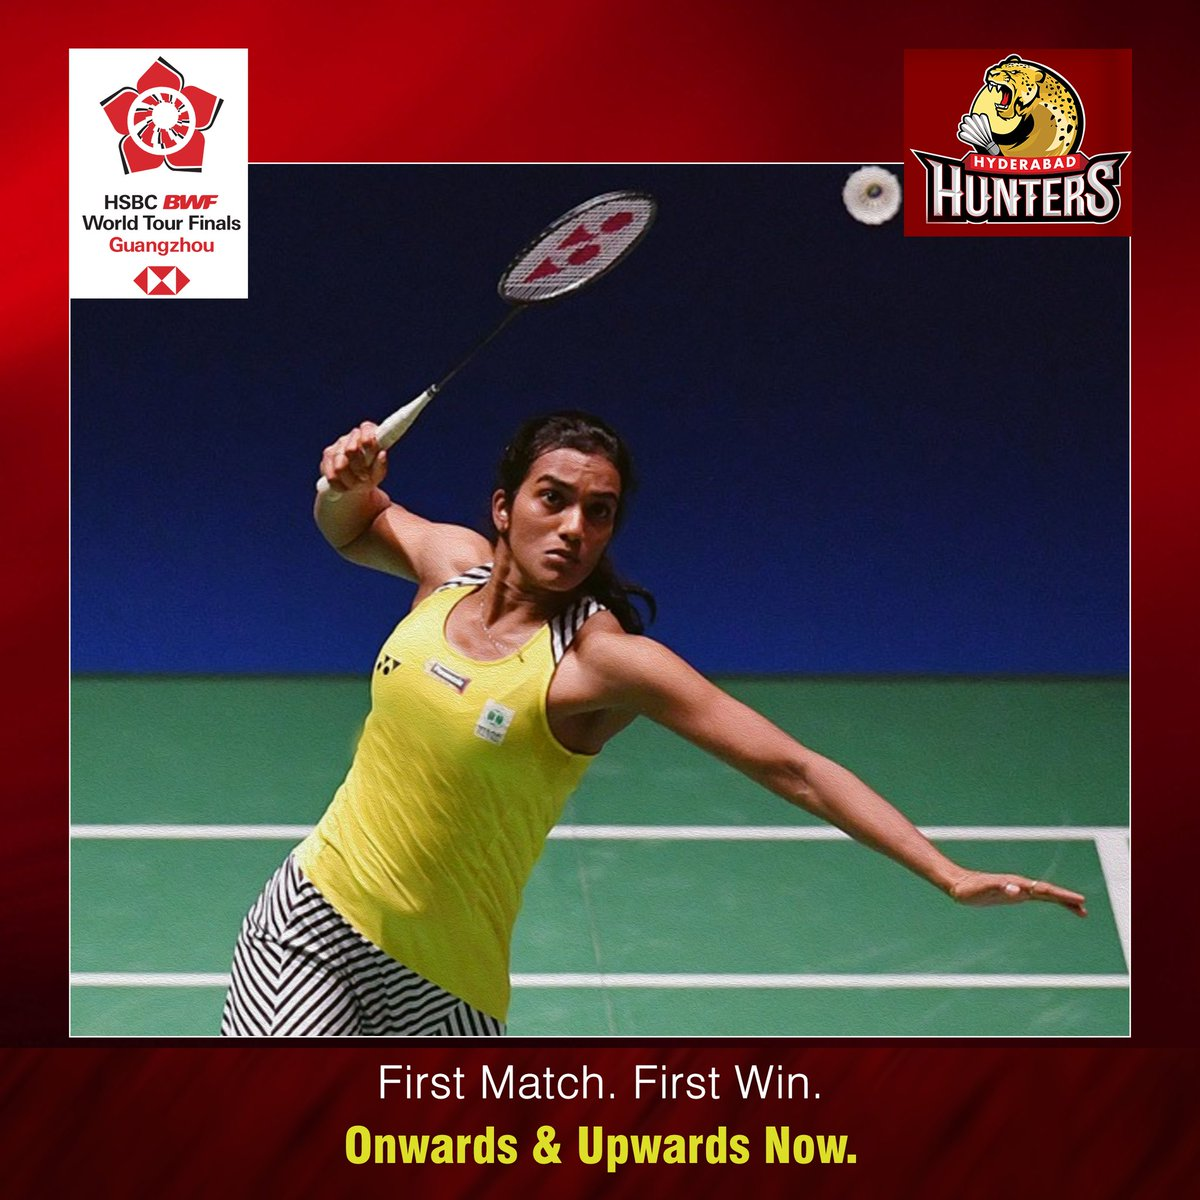 The #Hunters skipper @Pvsindhu1 makes a clinical start to the #BWFWorldTourFinals2018 with a 24-22 21-15 victory over Akane Yamaguchi of Japan. Tougher battles ahead but this was just the perfect start! #BWFWorldTourFinals #Guangzhou #HuntersArmy #HyderabadHunters